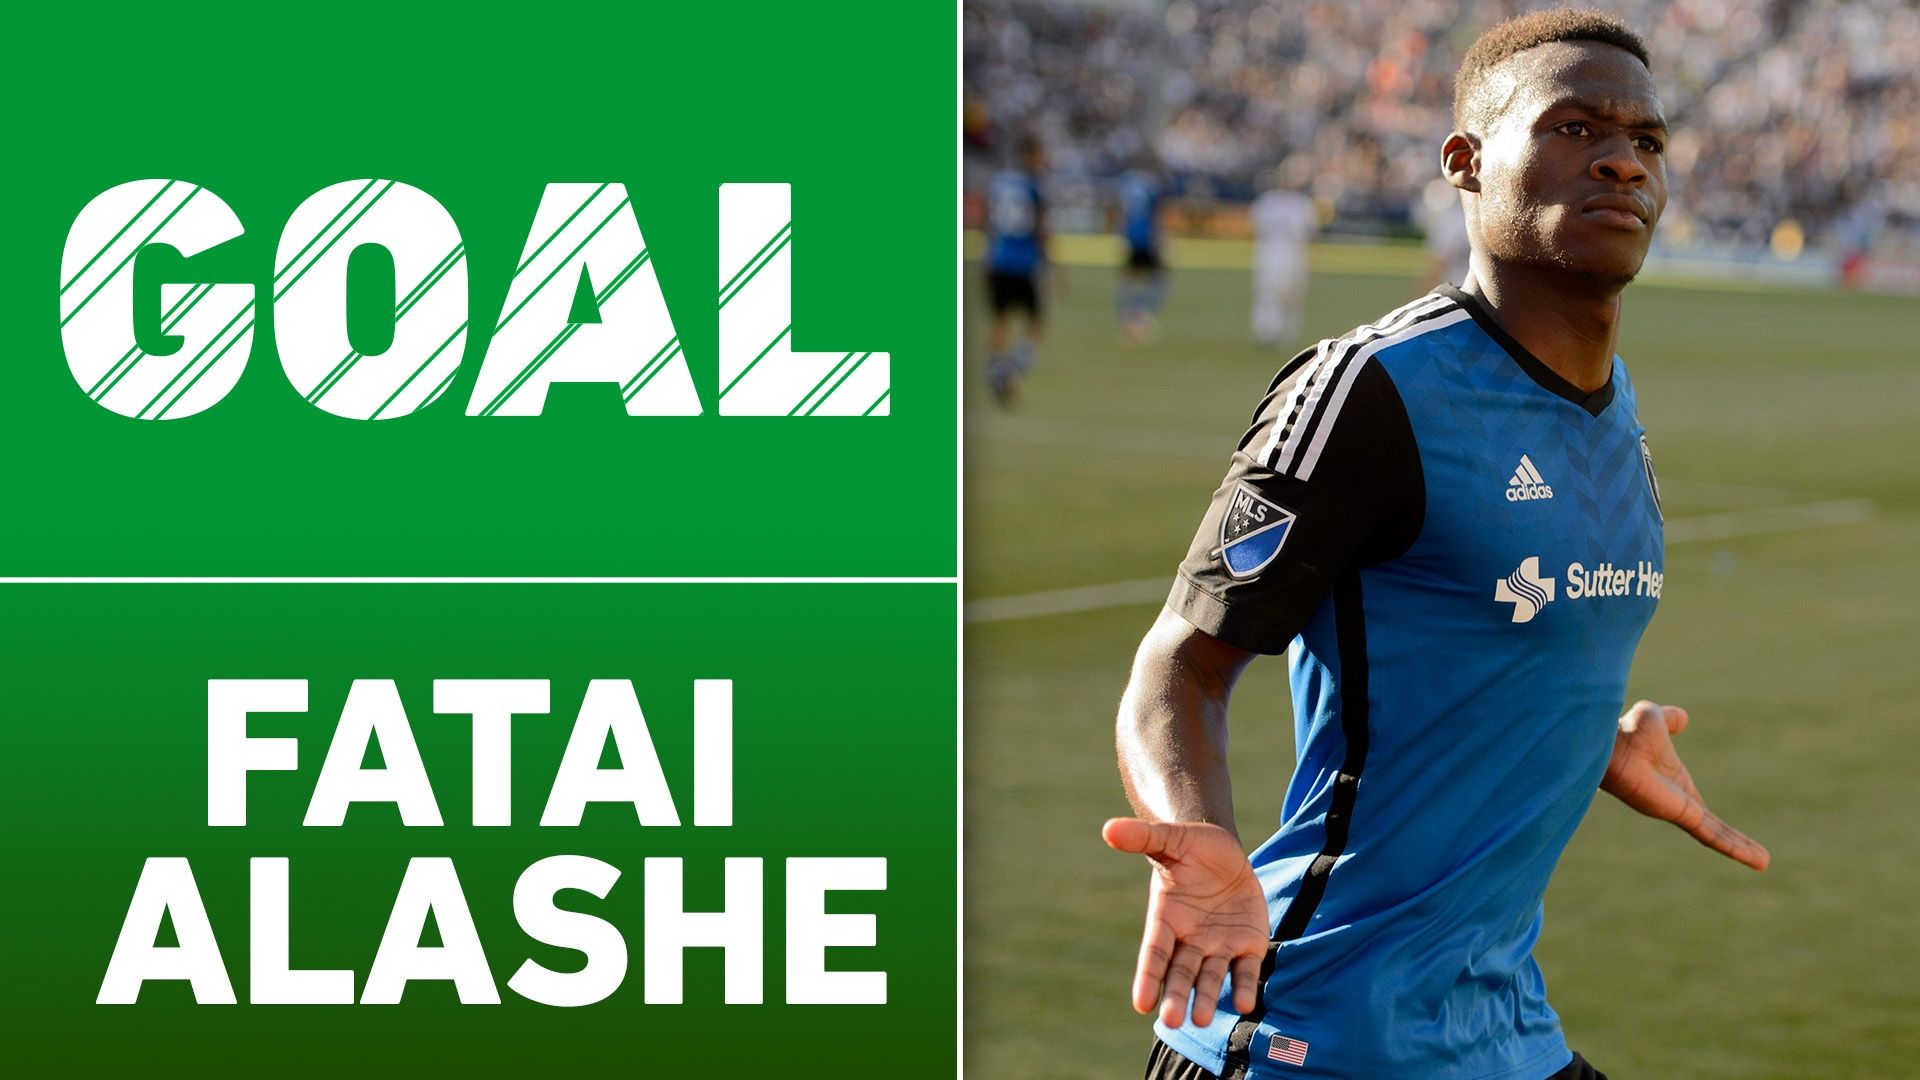 Video via MLS: Alashe beats Rimando